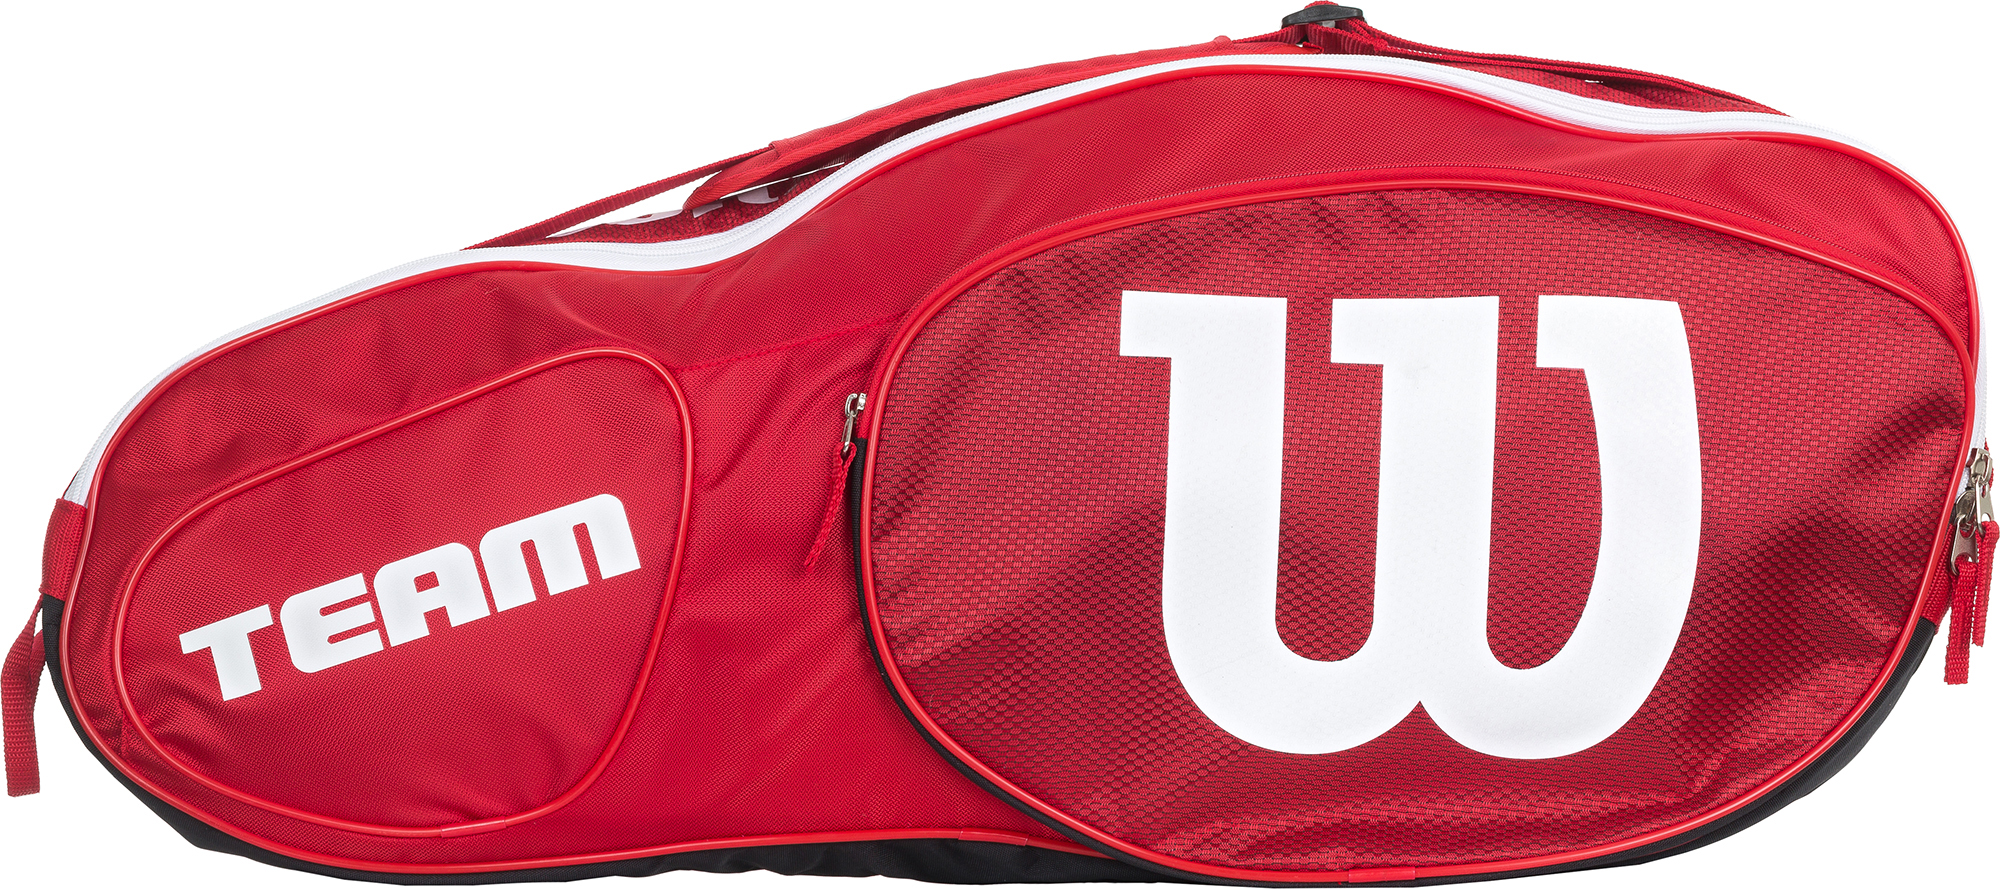 Wilson Сумка Wilson Team Iii 3 Pack виброгаситель wilson emotisorbs assorted pack смайлик